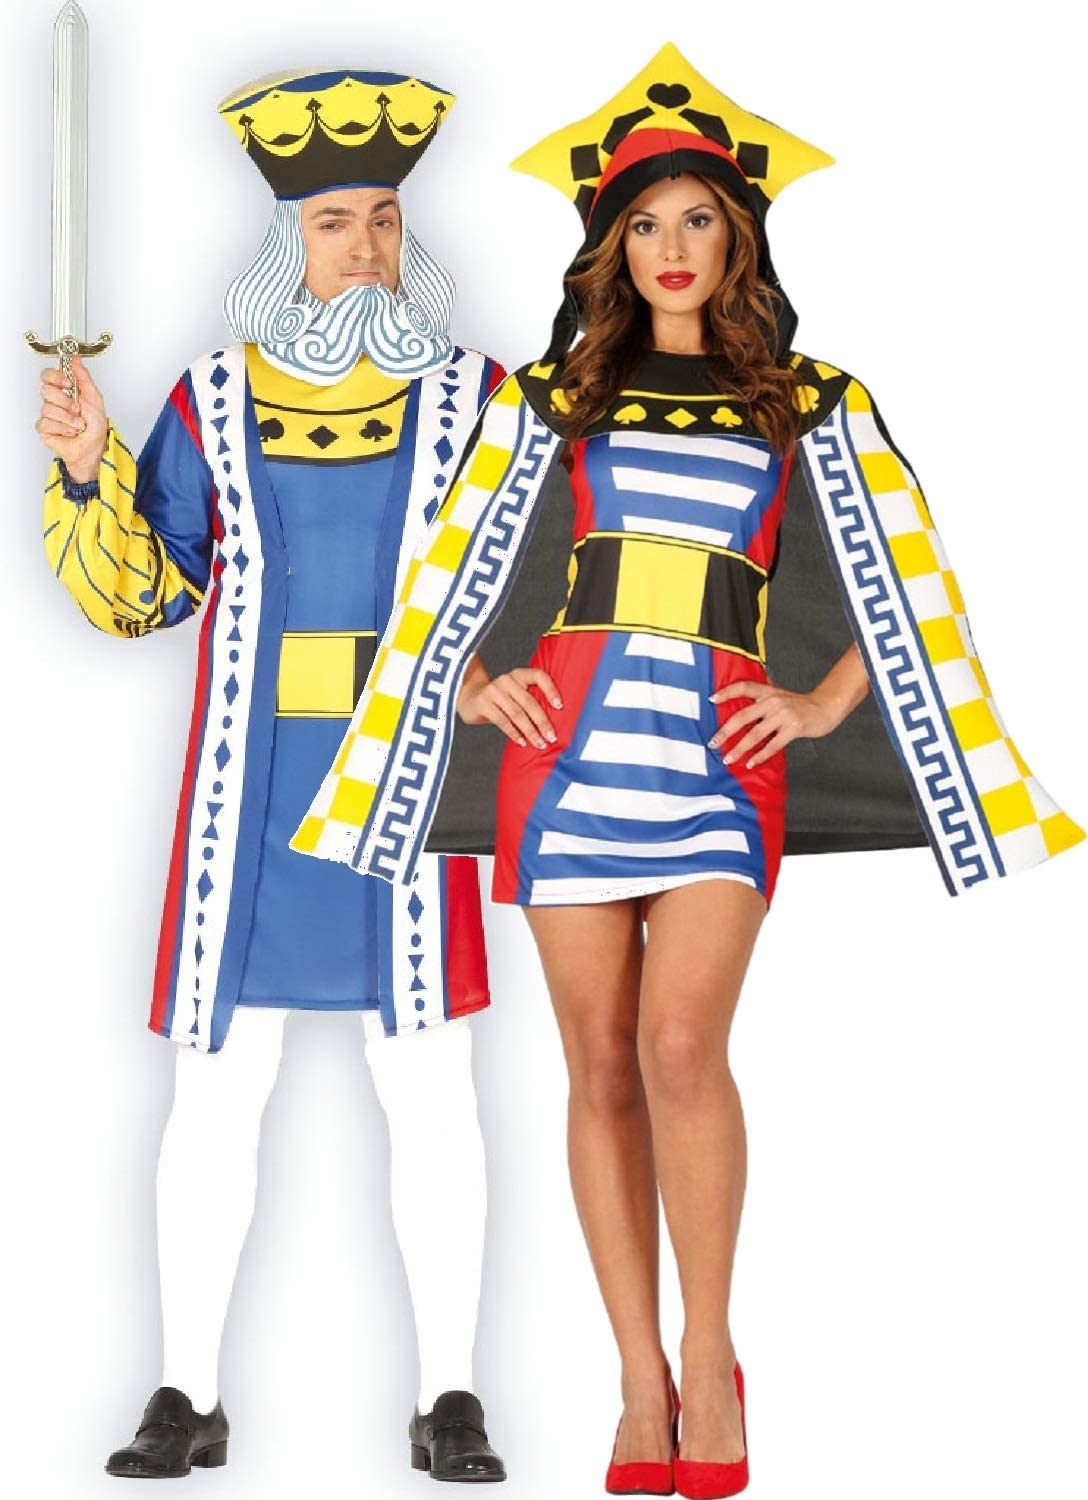 Couples Playing Cards Outfits for man and woman.